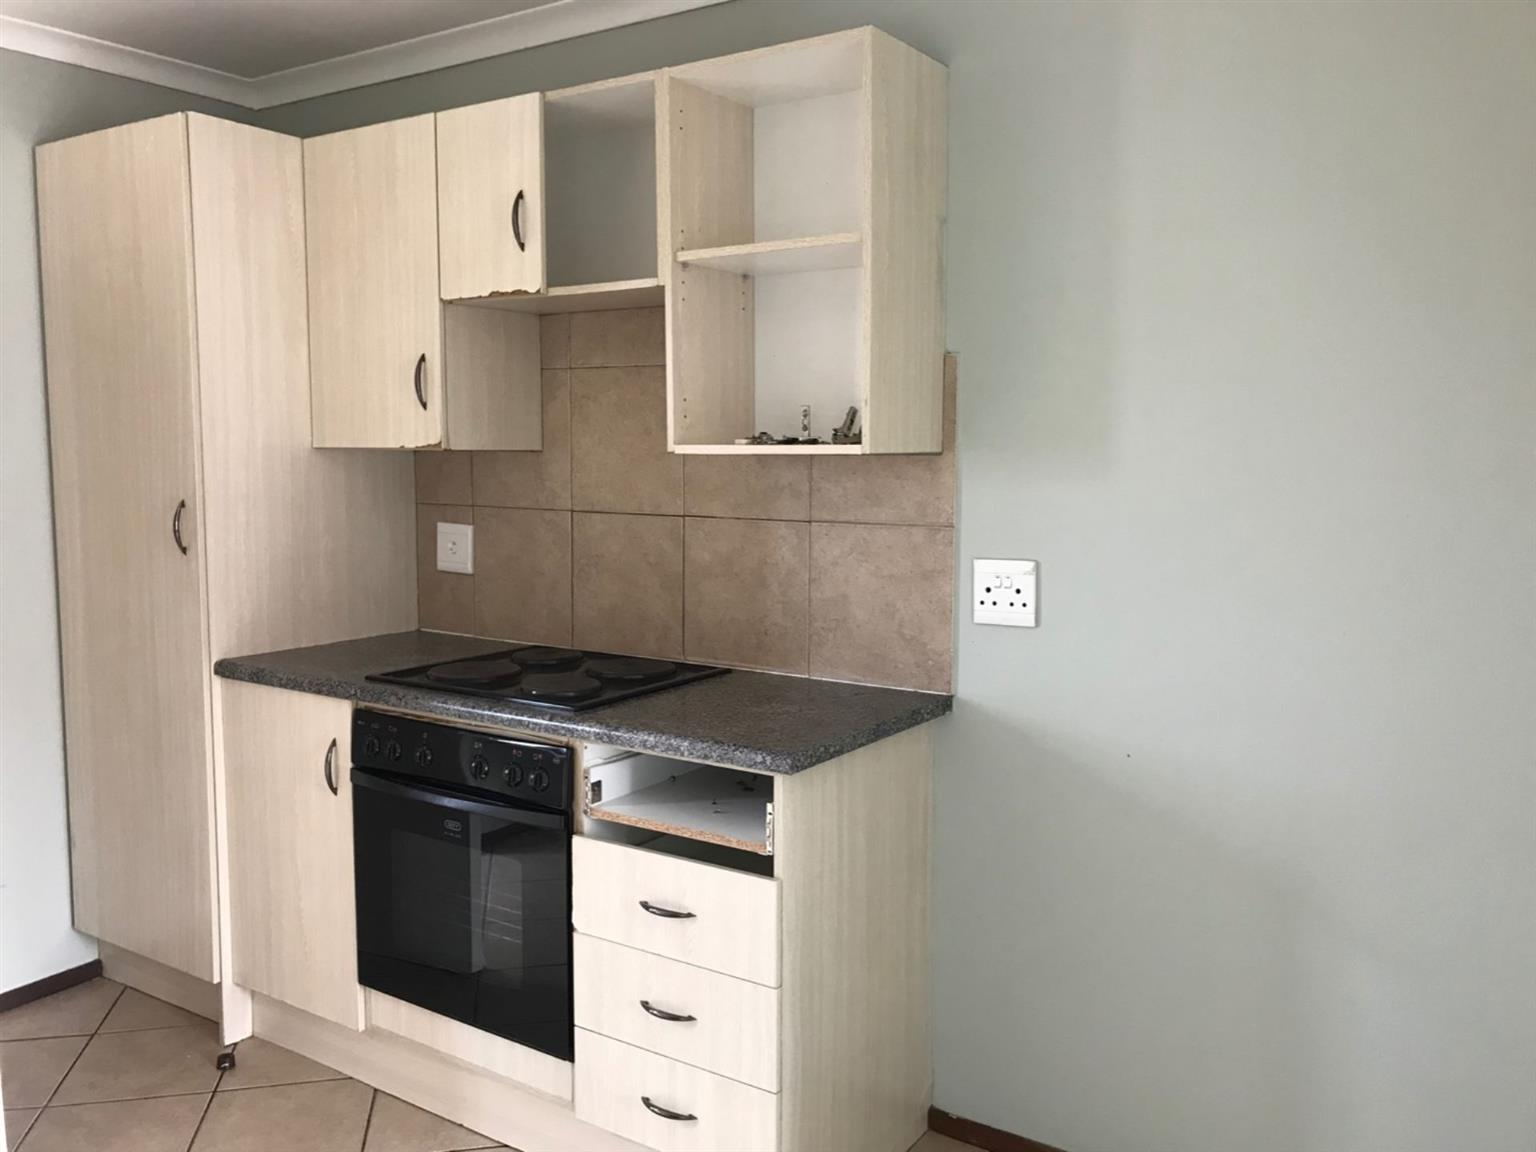 Apartment For Sale in TERENURE